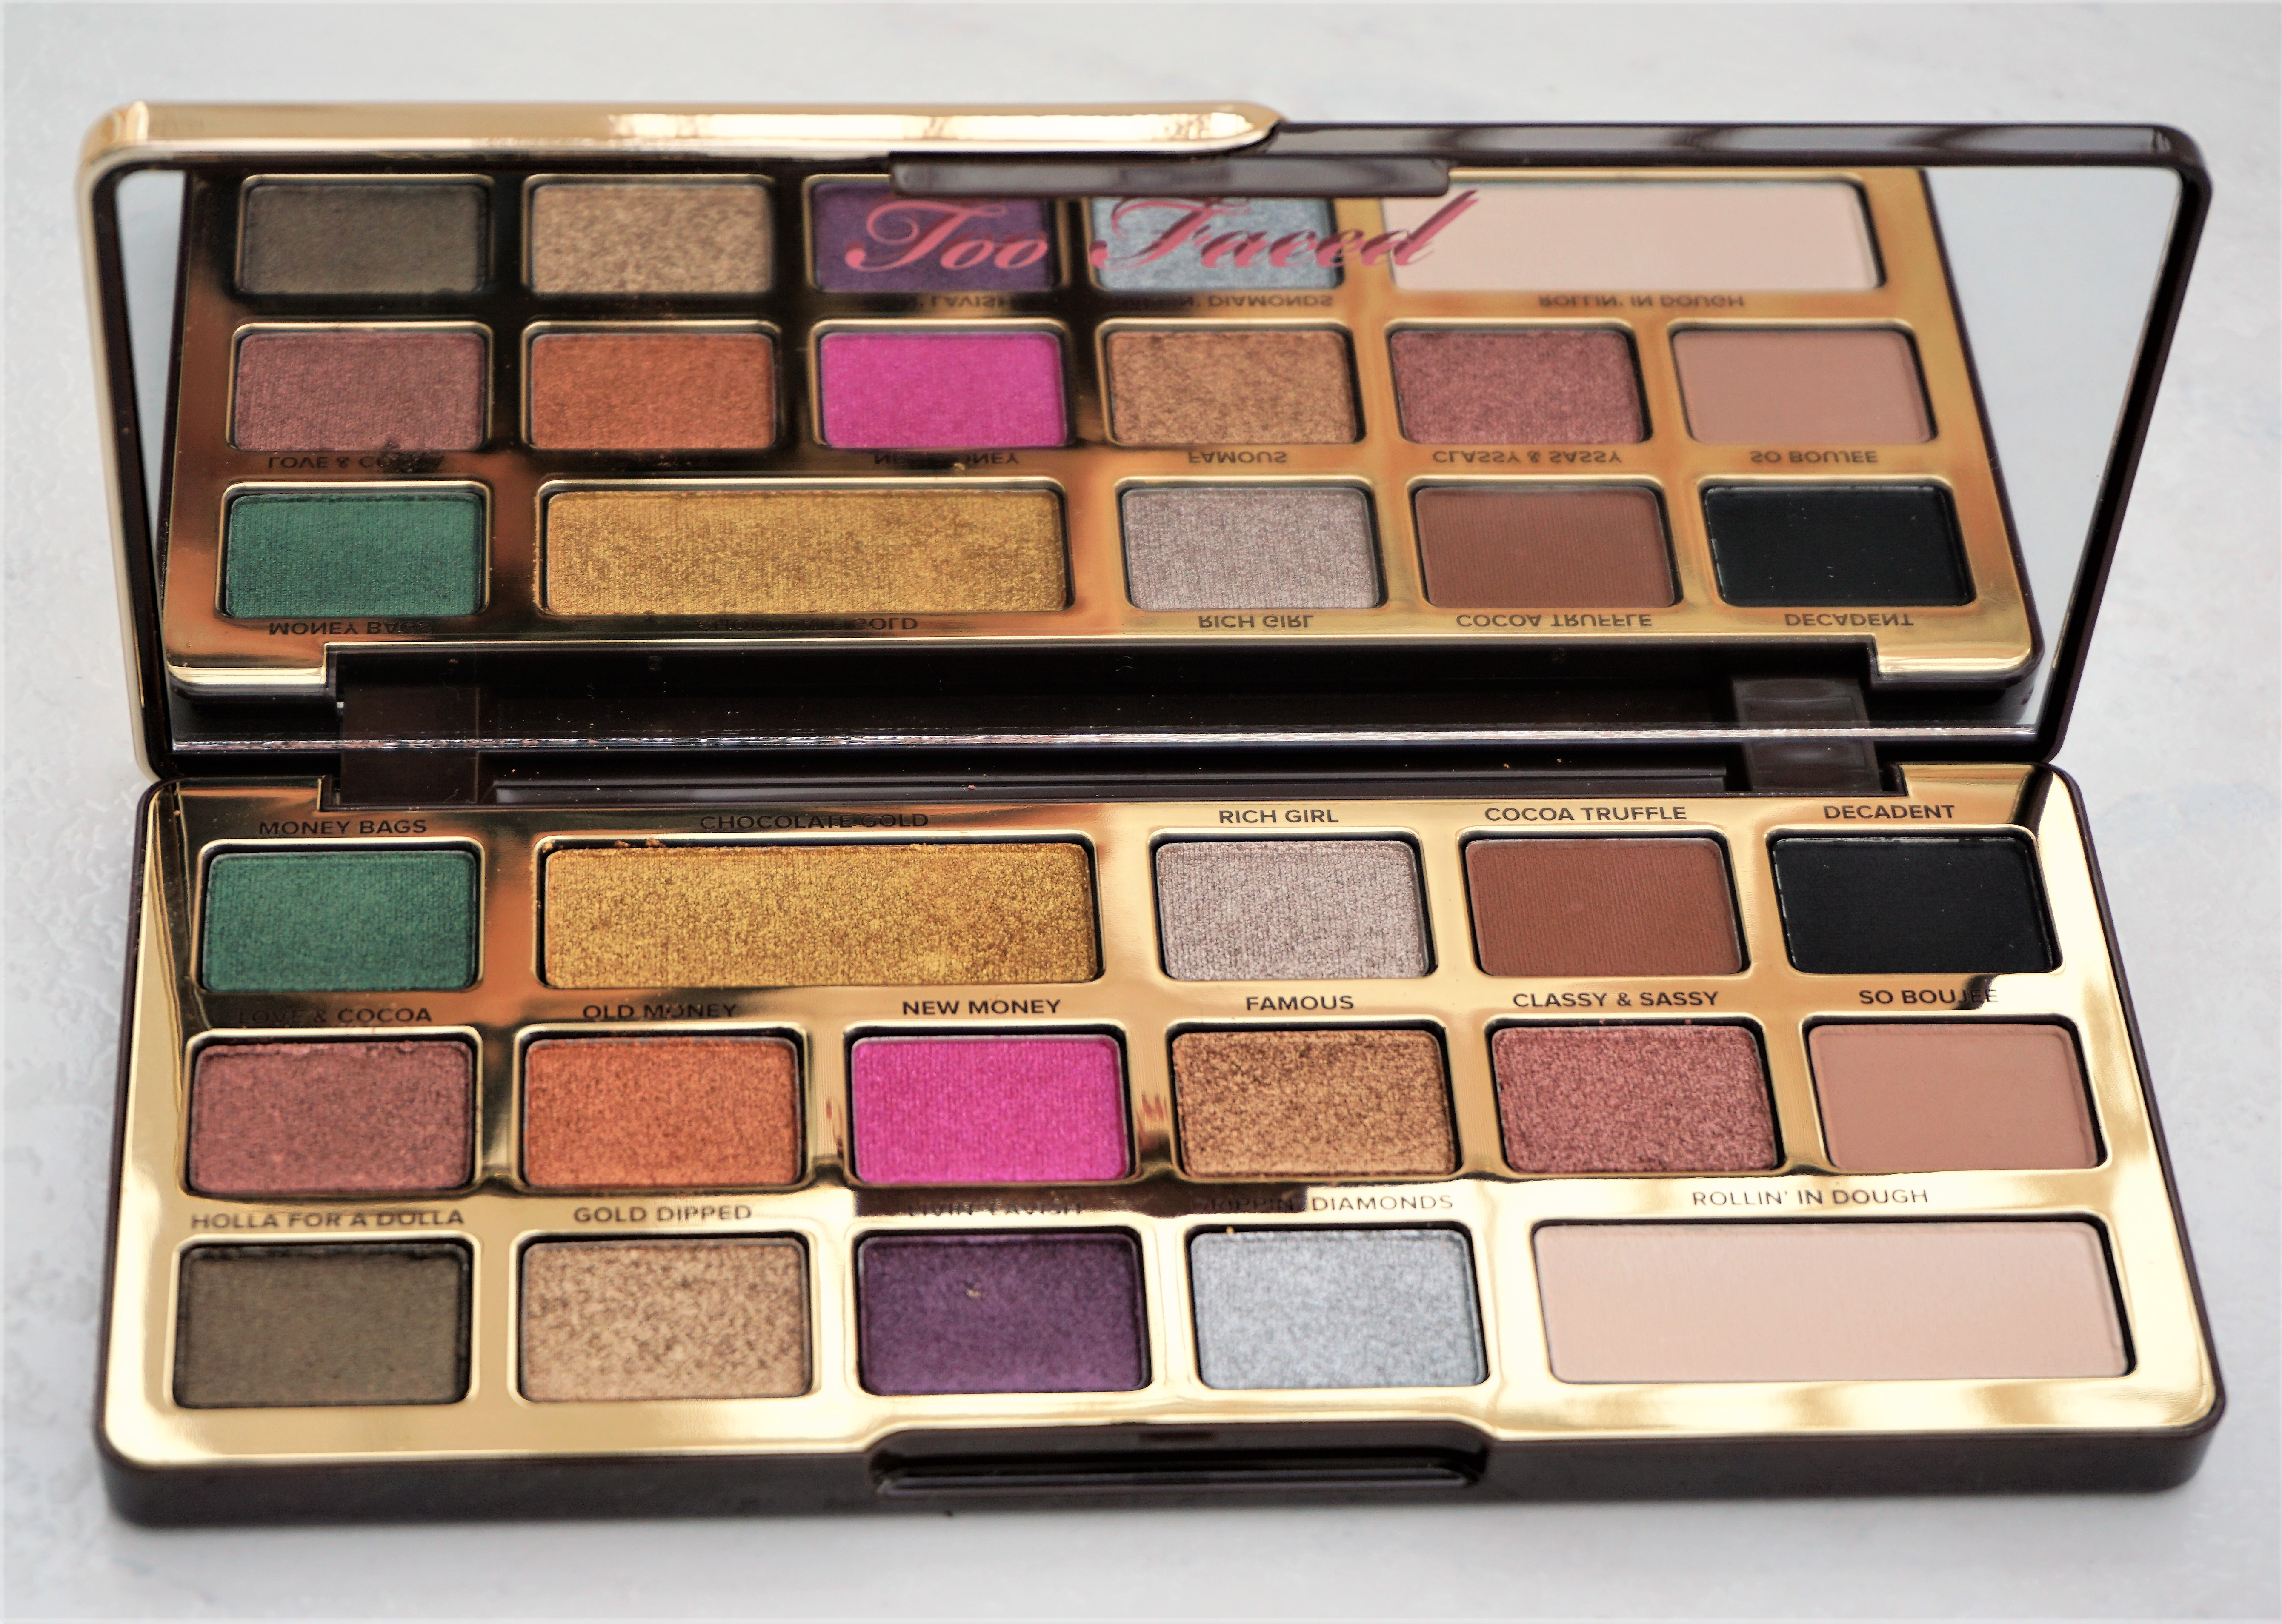 Too Faced Make Up By Saira Lee